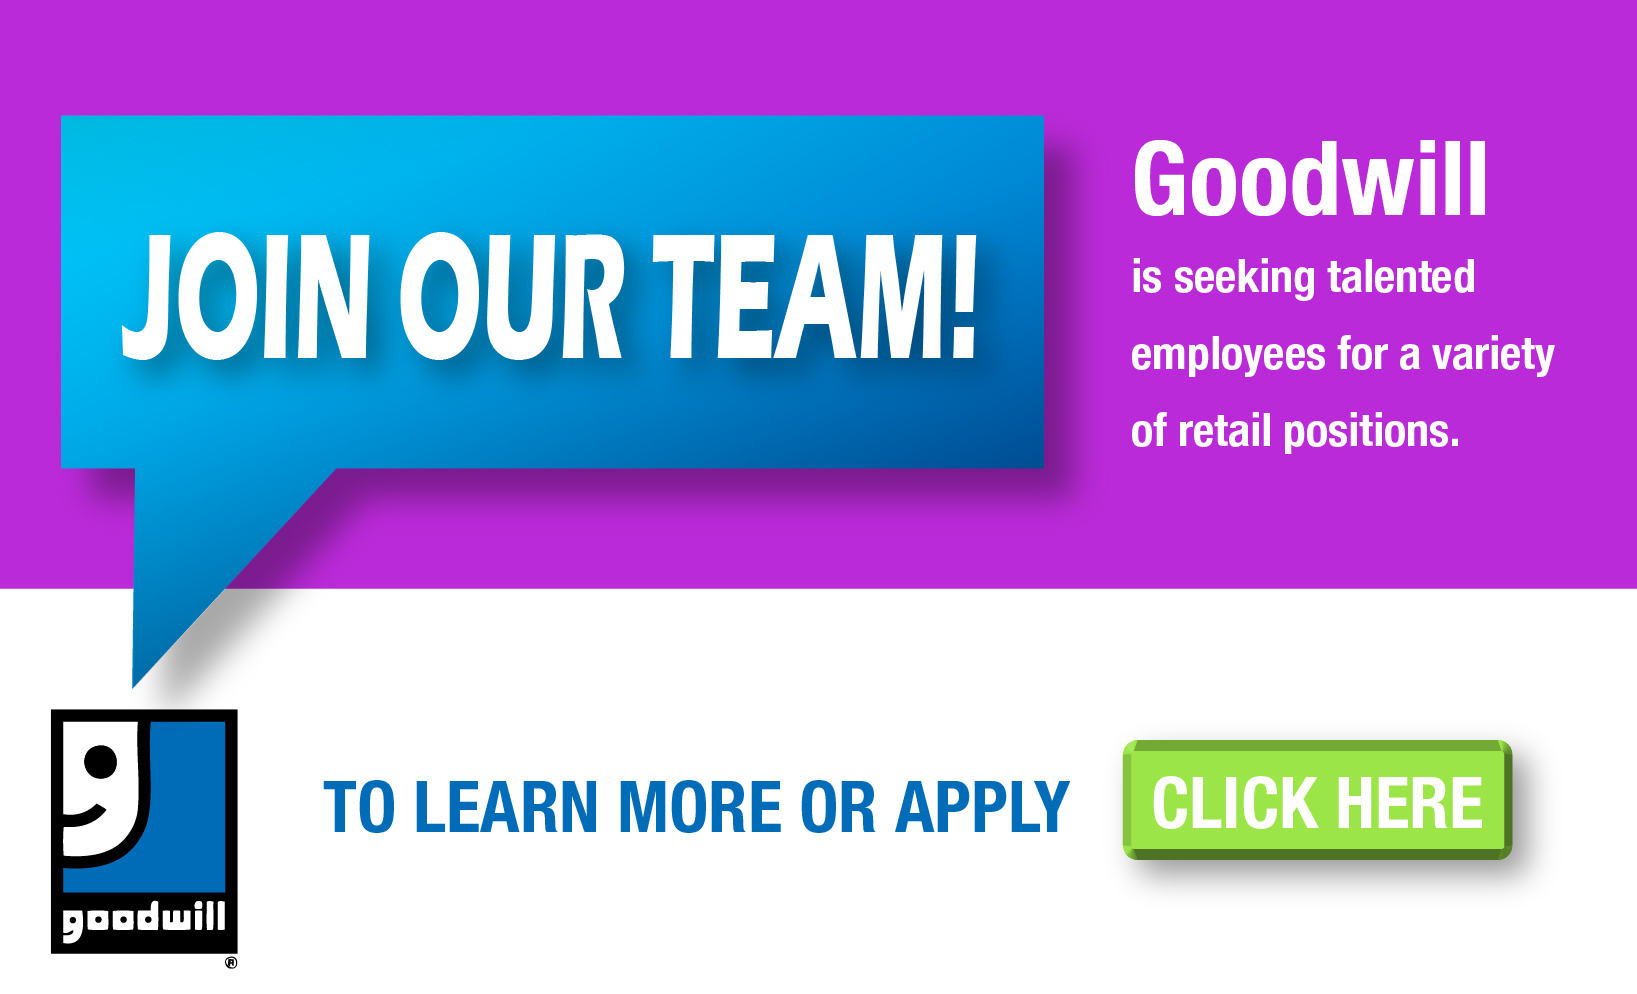 Join our team Goodwill is hiring-01